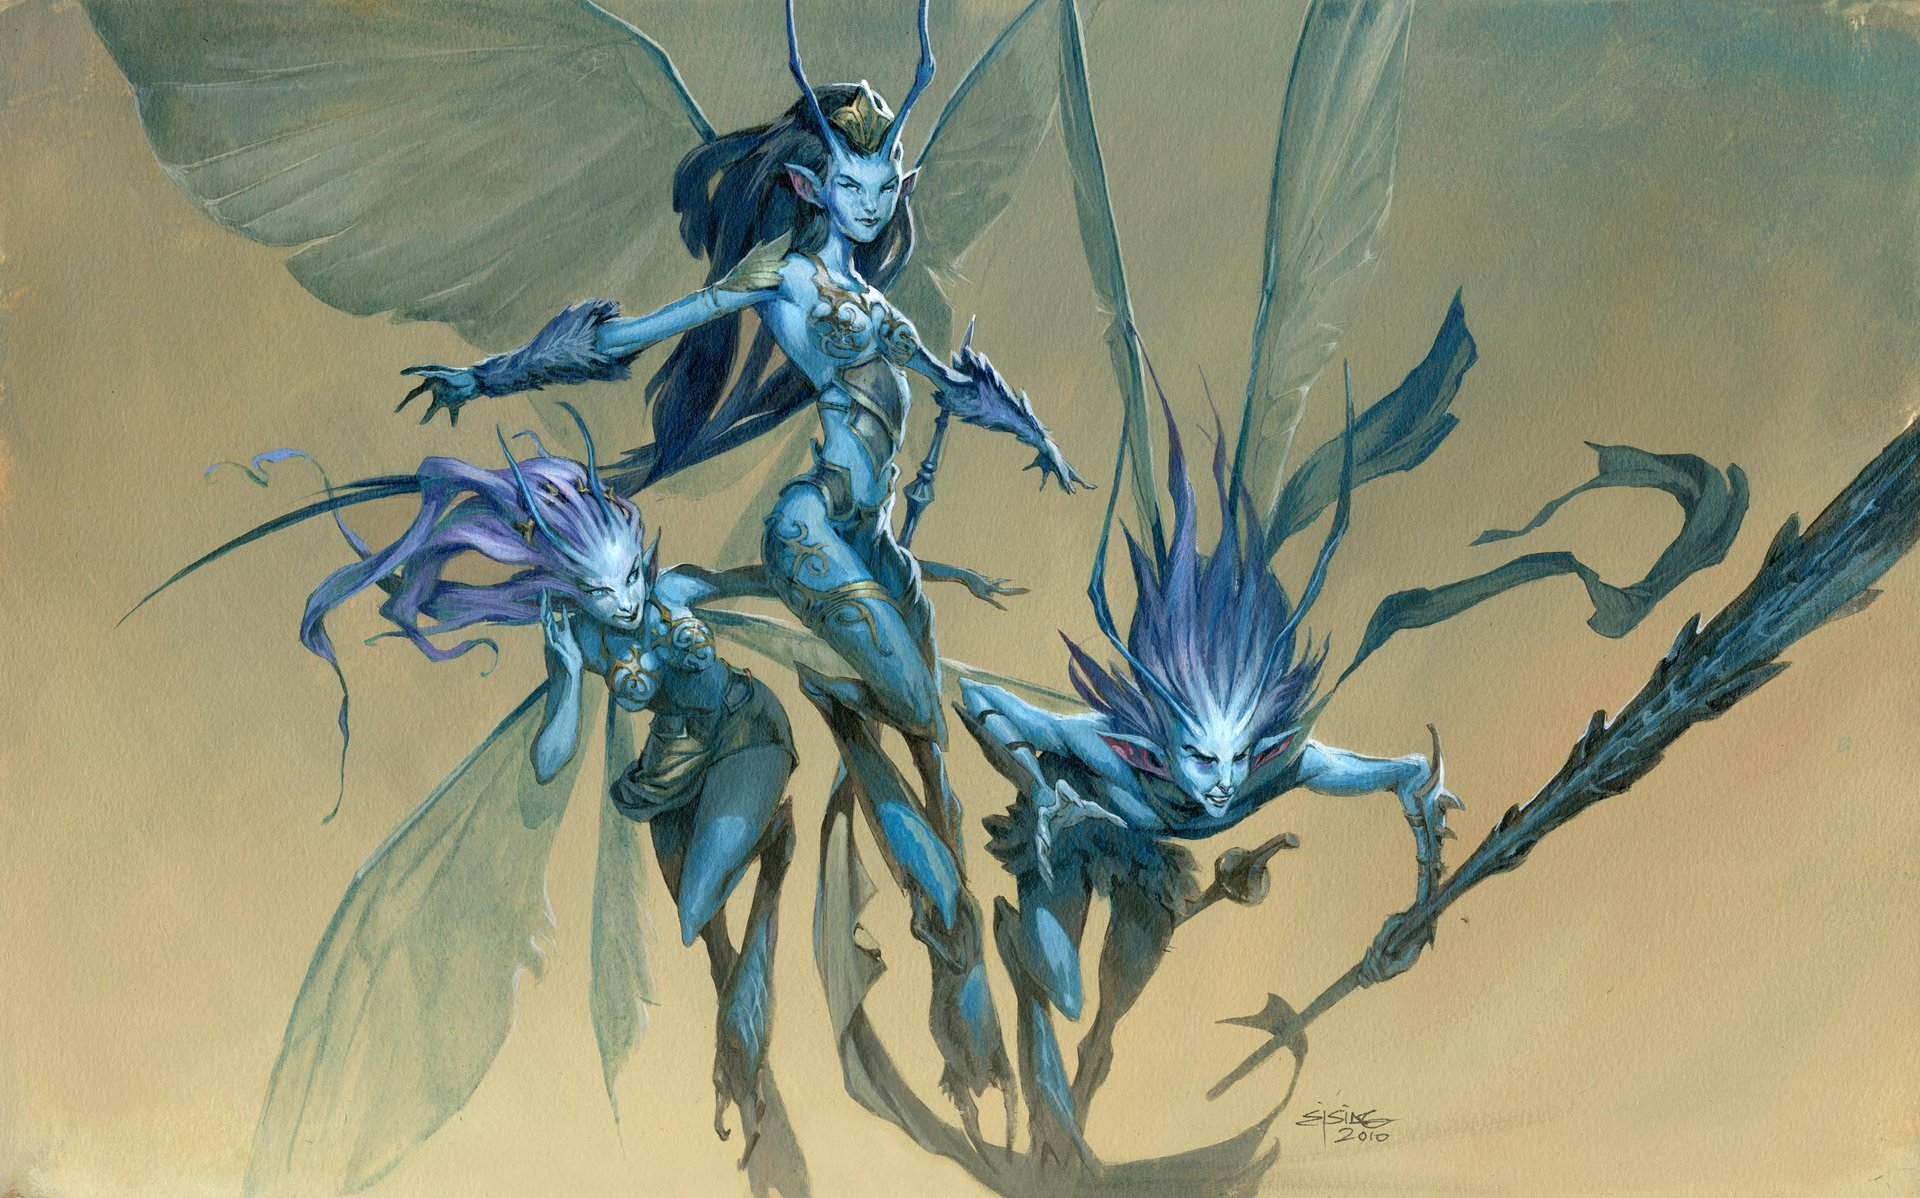 Jesper Ejsing Acrylic Painting Vendilion Cilque Magic the Gathering